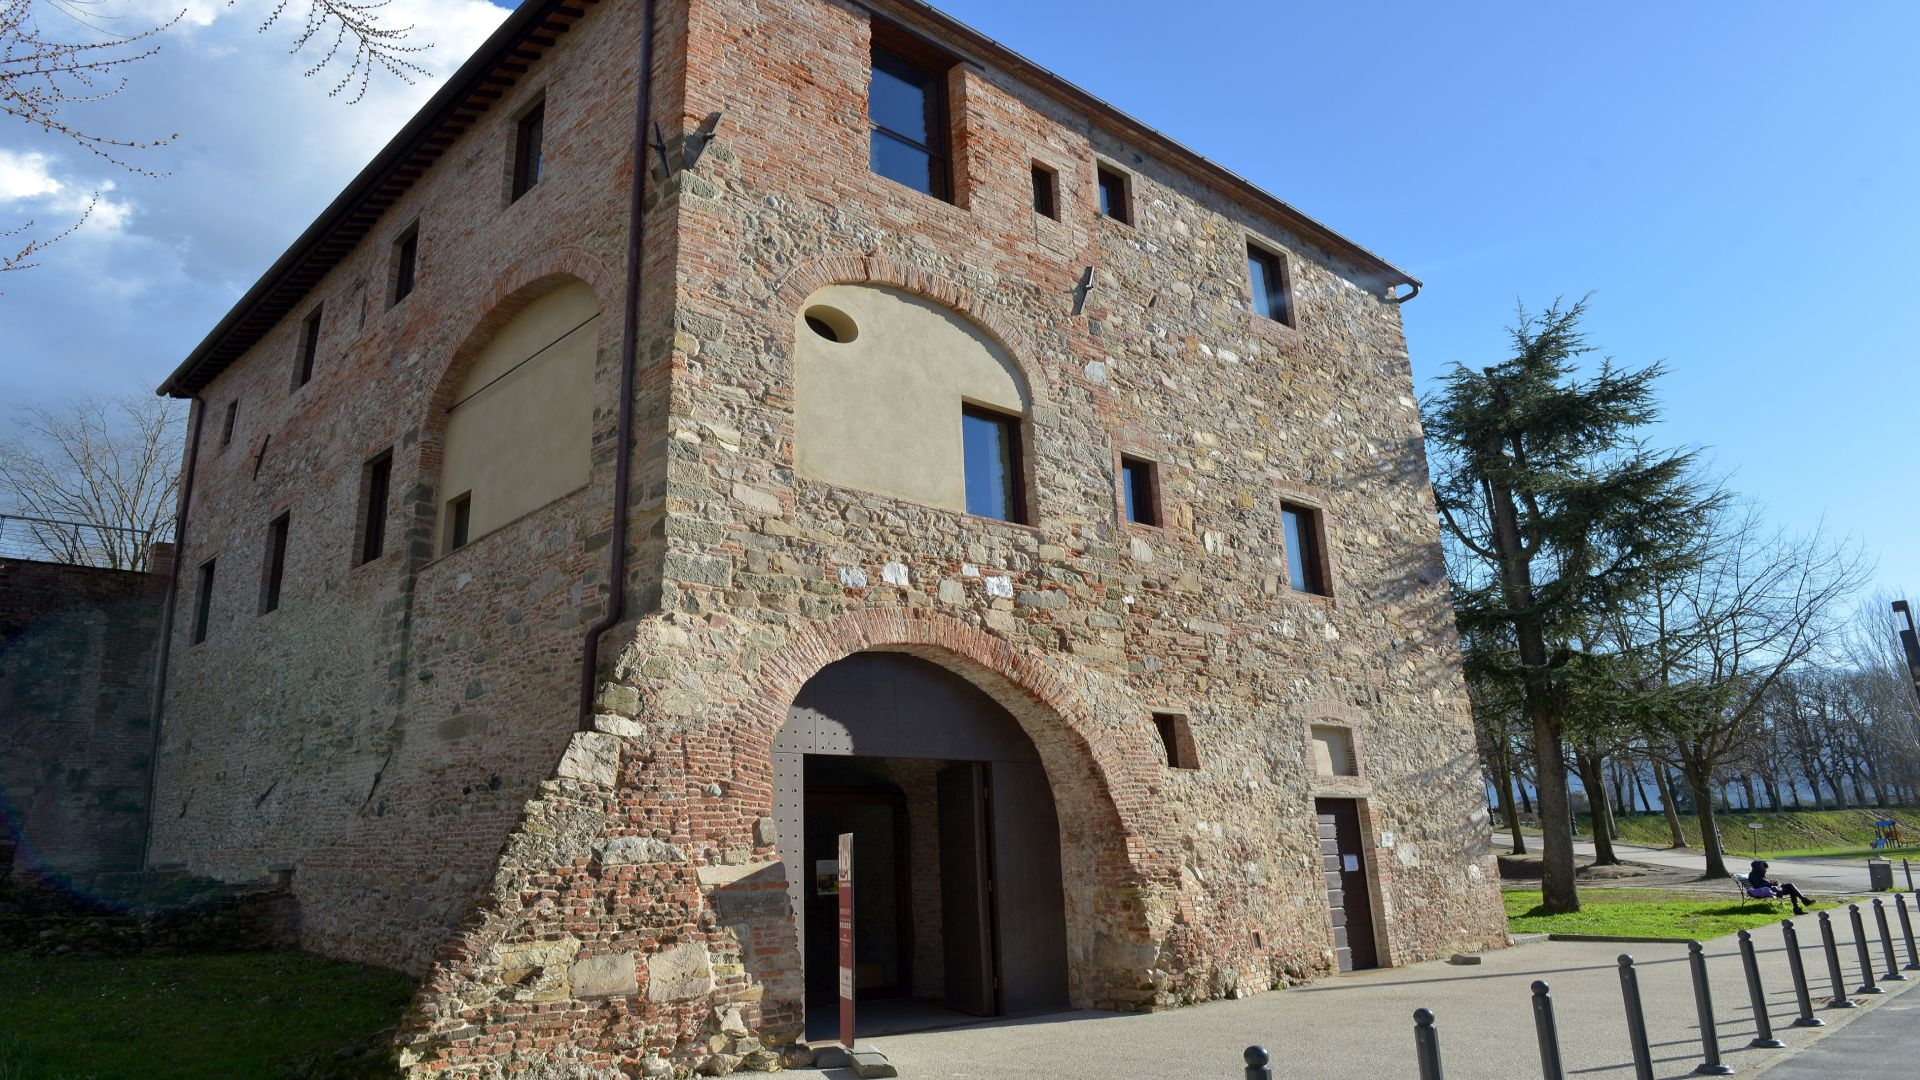 the executioner's house in Lucca